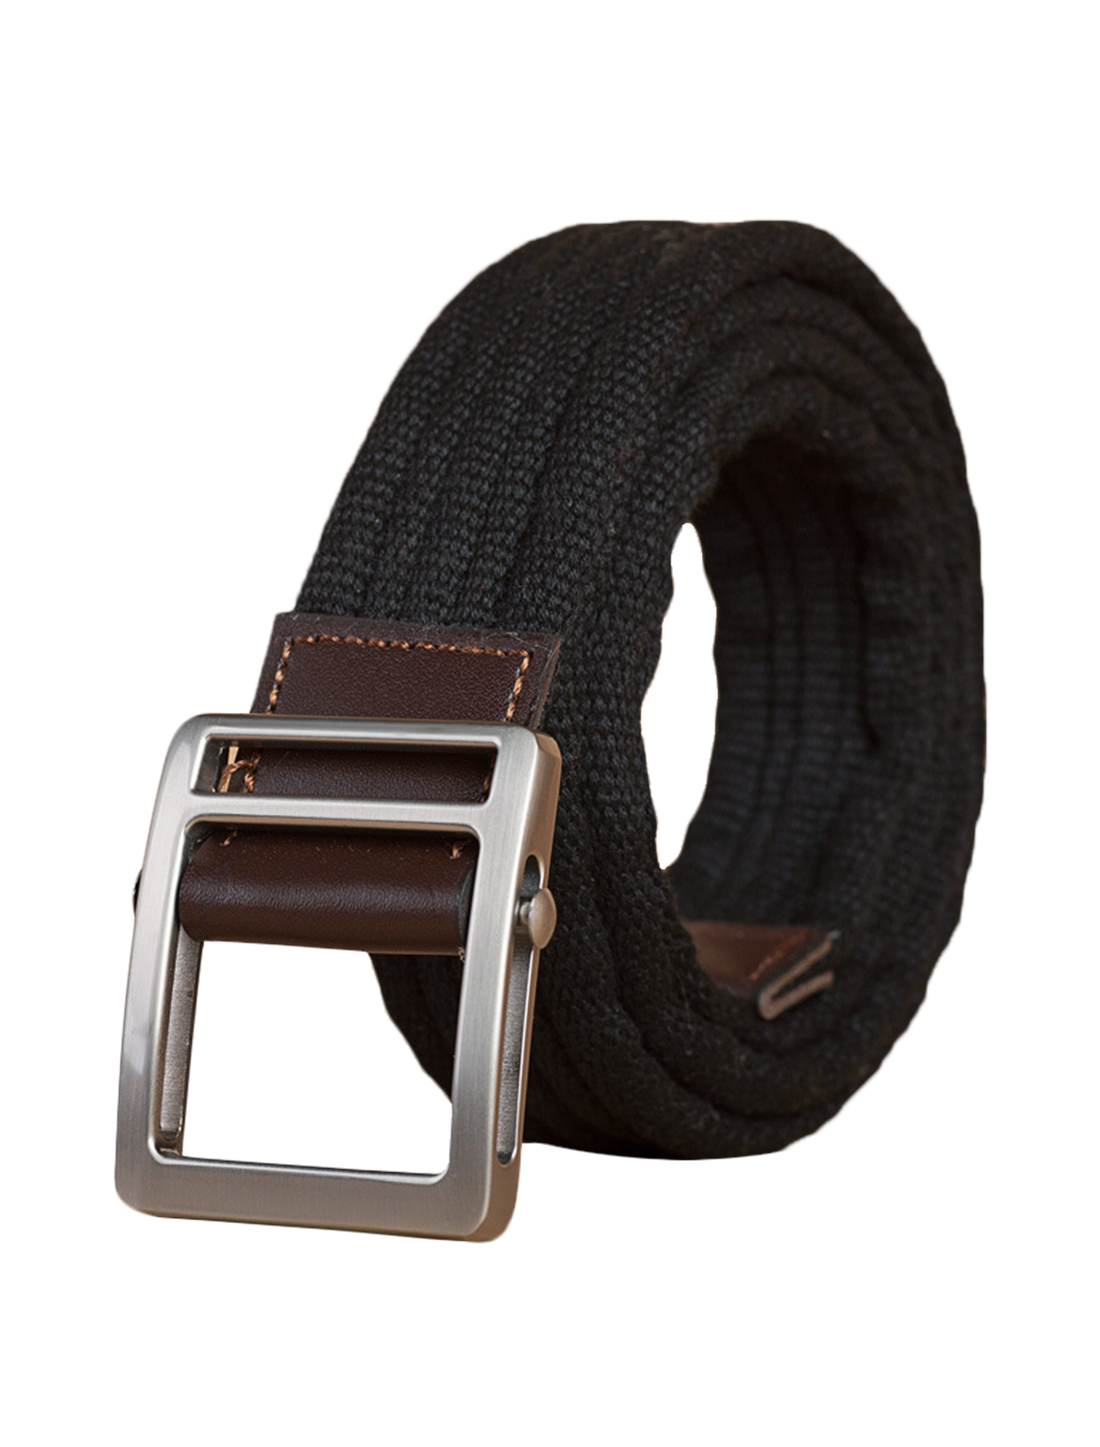 "Unisex Skinny Canvas Slide Buckle Belt Width 1 5/8"" Black"